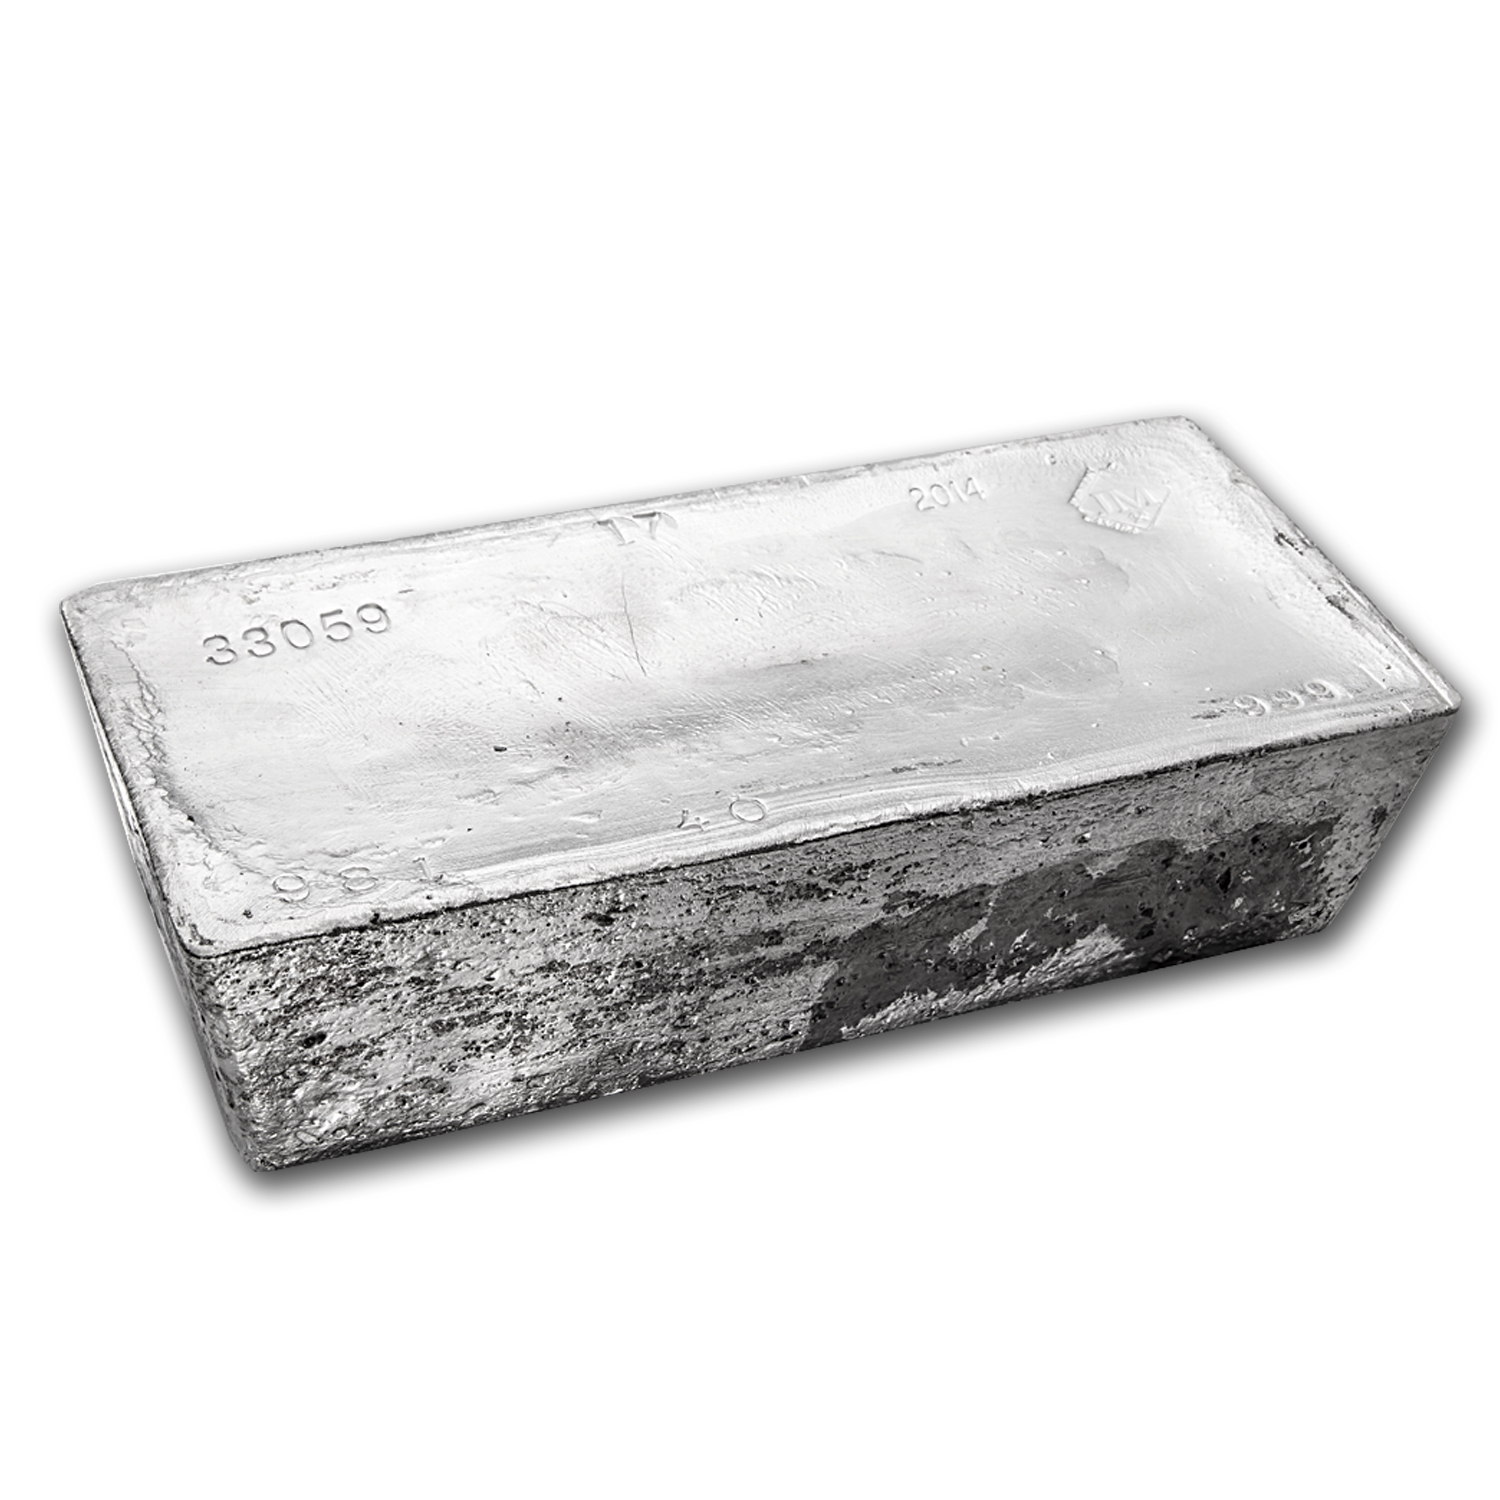 944.40 oz Silver Bars - Johnson Matthey